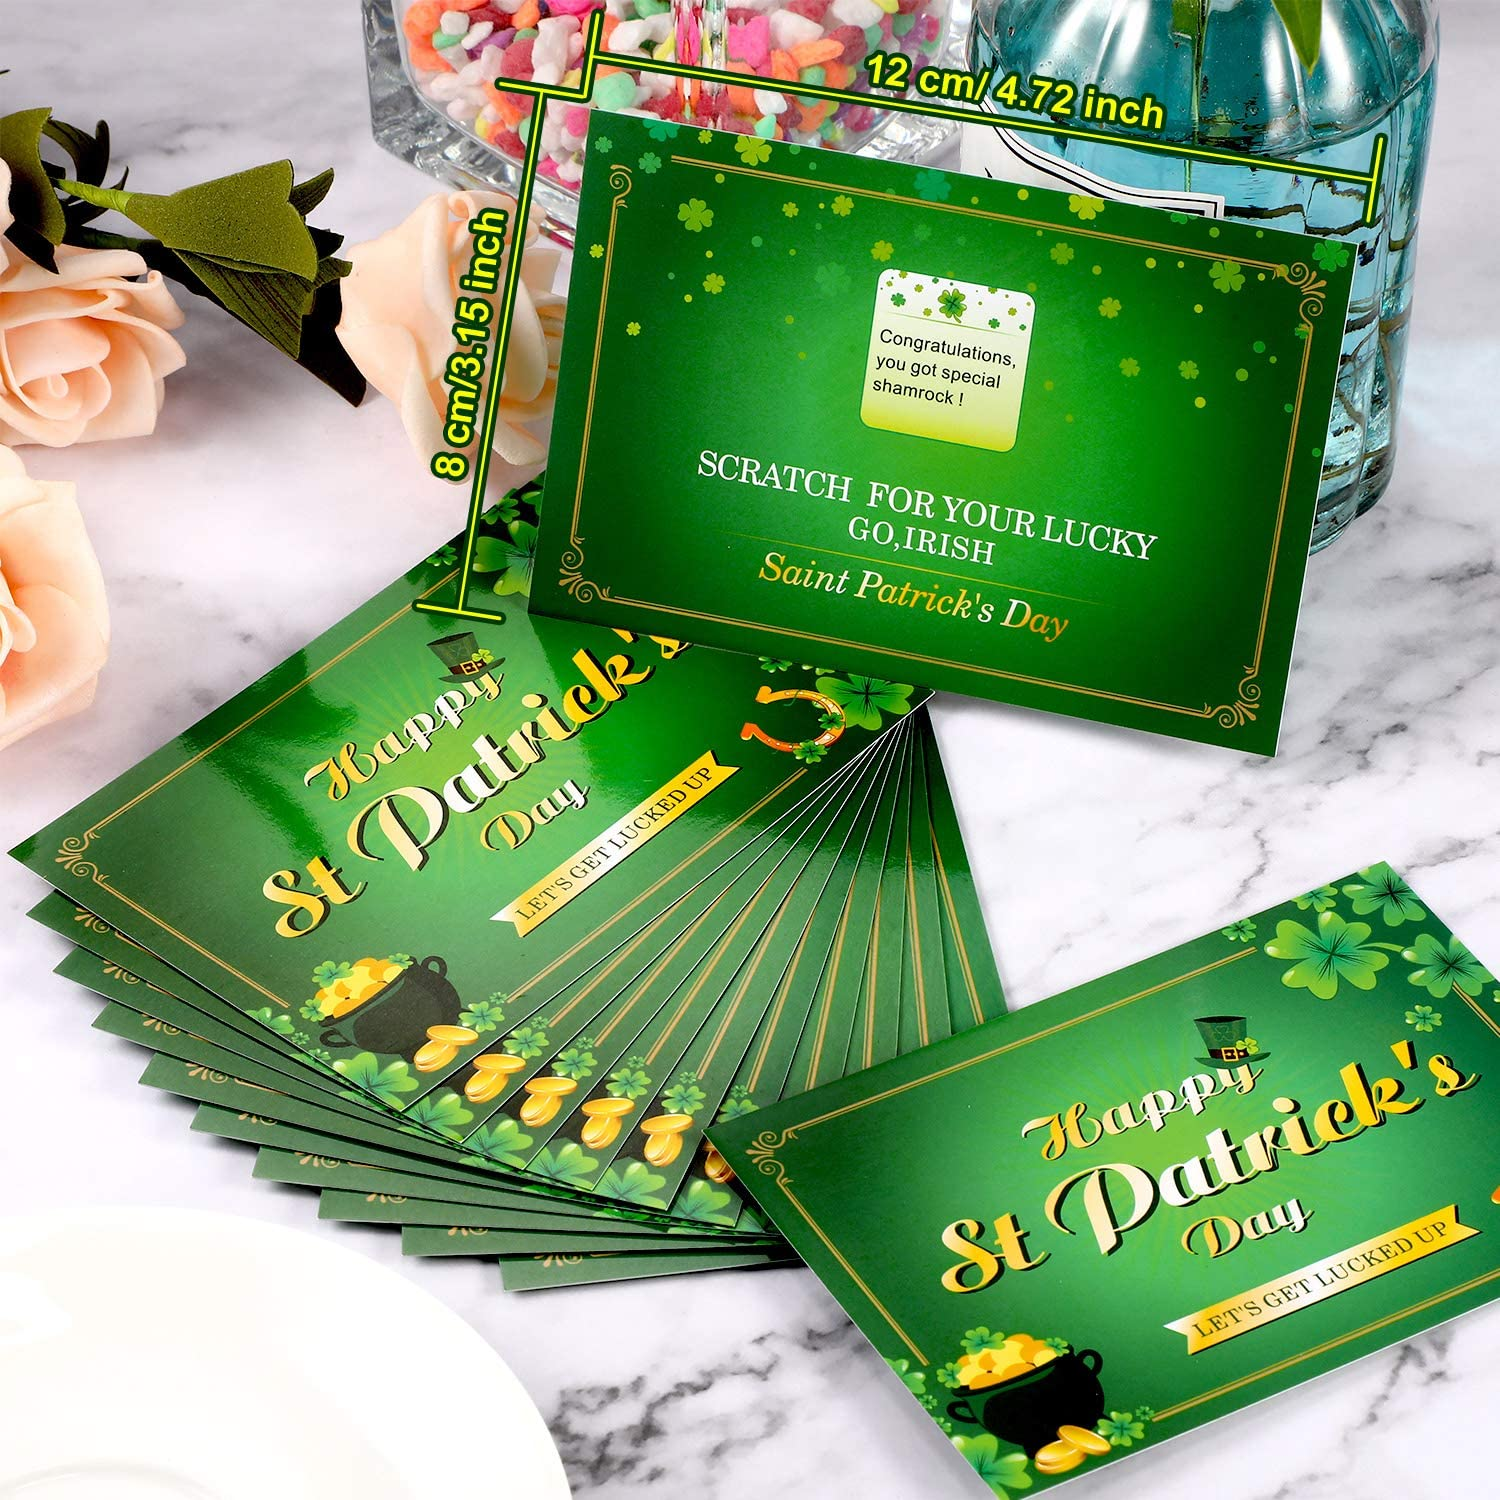 Patricks Day Fortune Cards 72 Pieces St 2 Sets Shamrock Irish Lucky Scratch Off Games Laminated Fortune Teller Cards Leprechaun Shamrock Irish Lucky Scratch Off Games for Party Supplies Activity